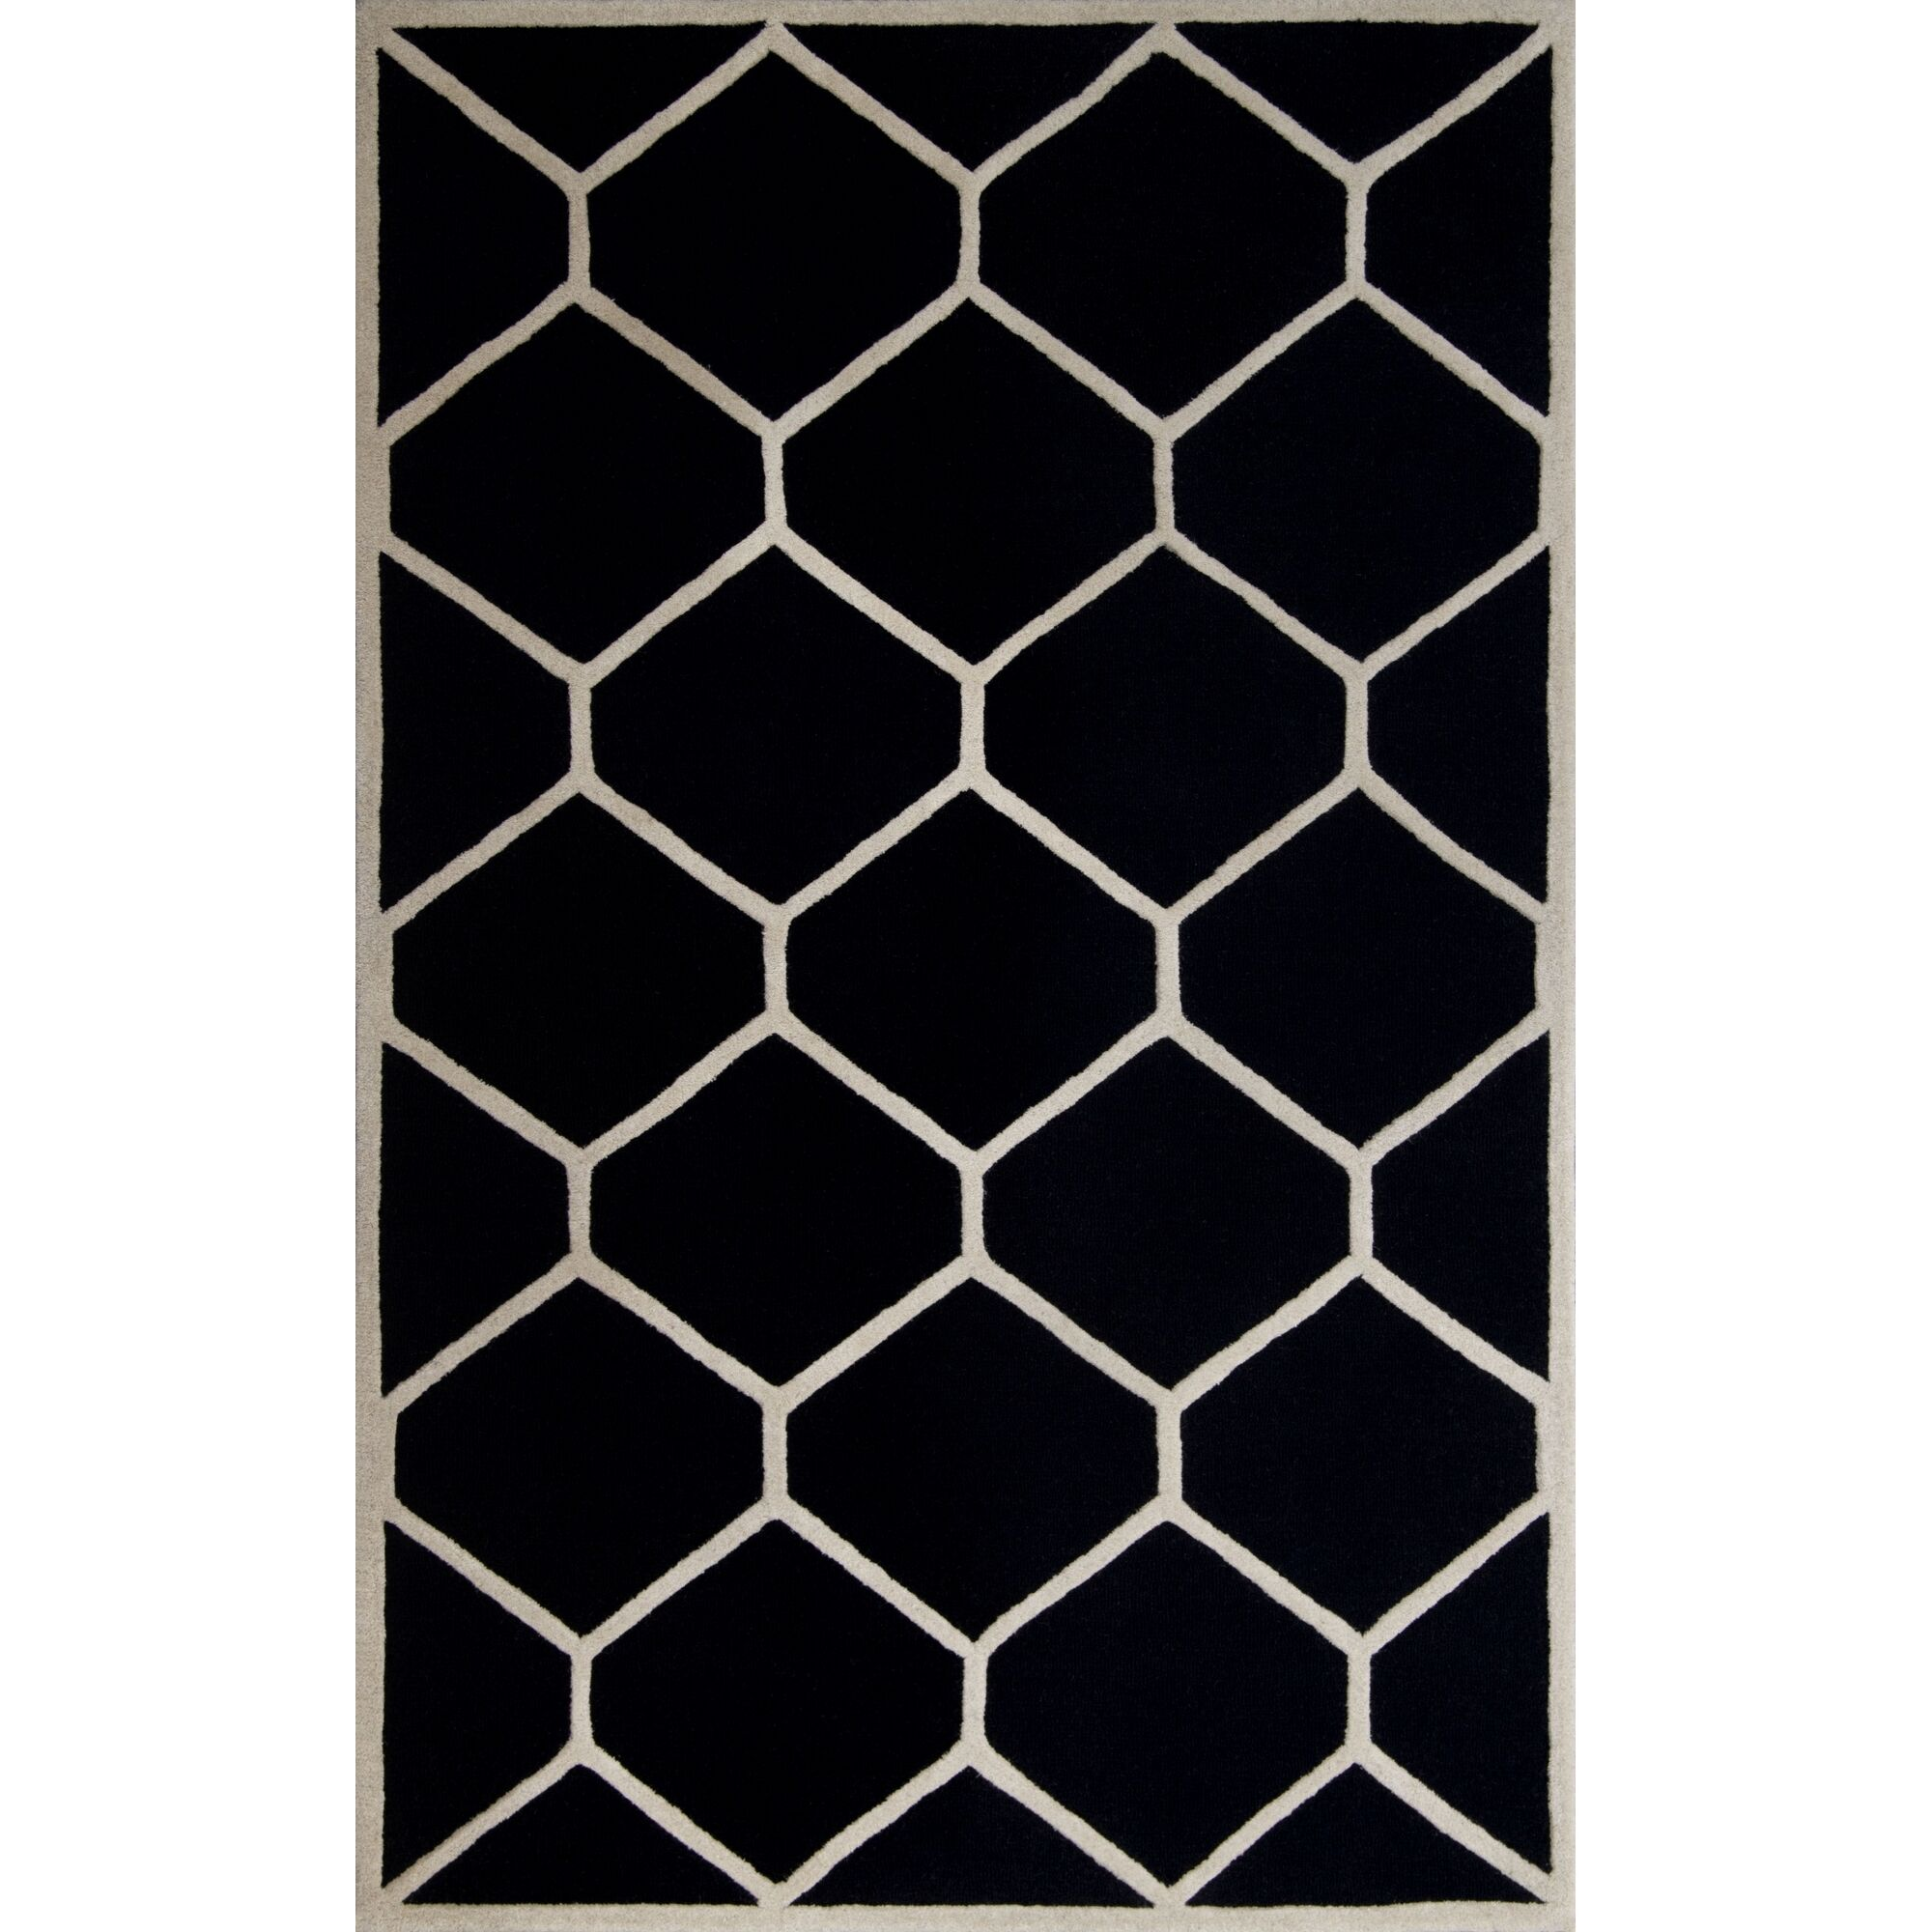 Martins Hand-Tufted Wool Black/Ivory Area Rug Rug Size: Rectangle 6' x 9'